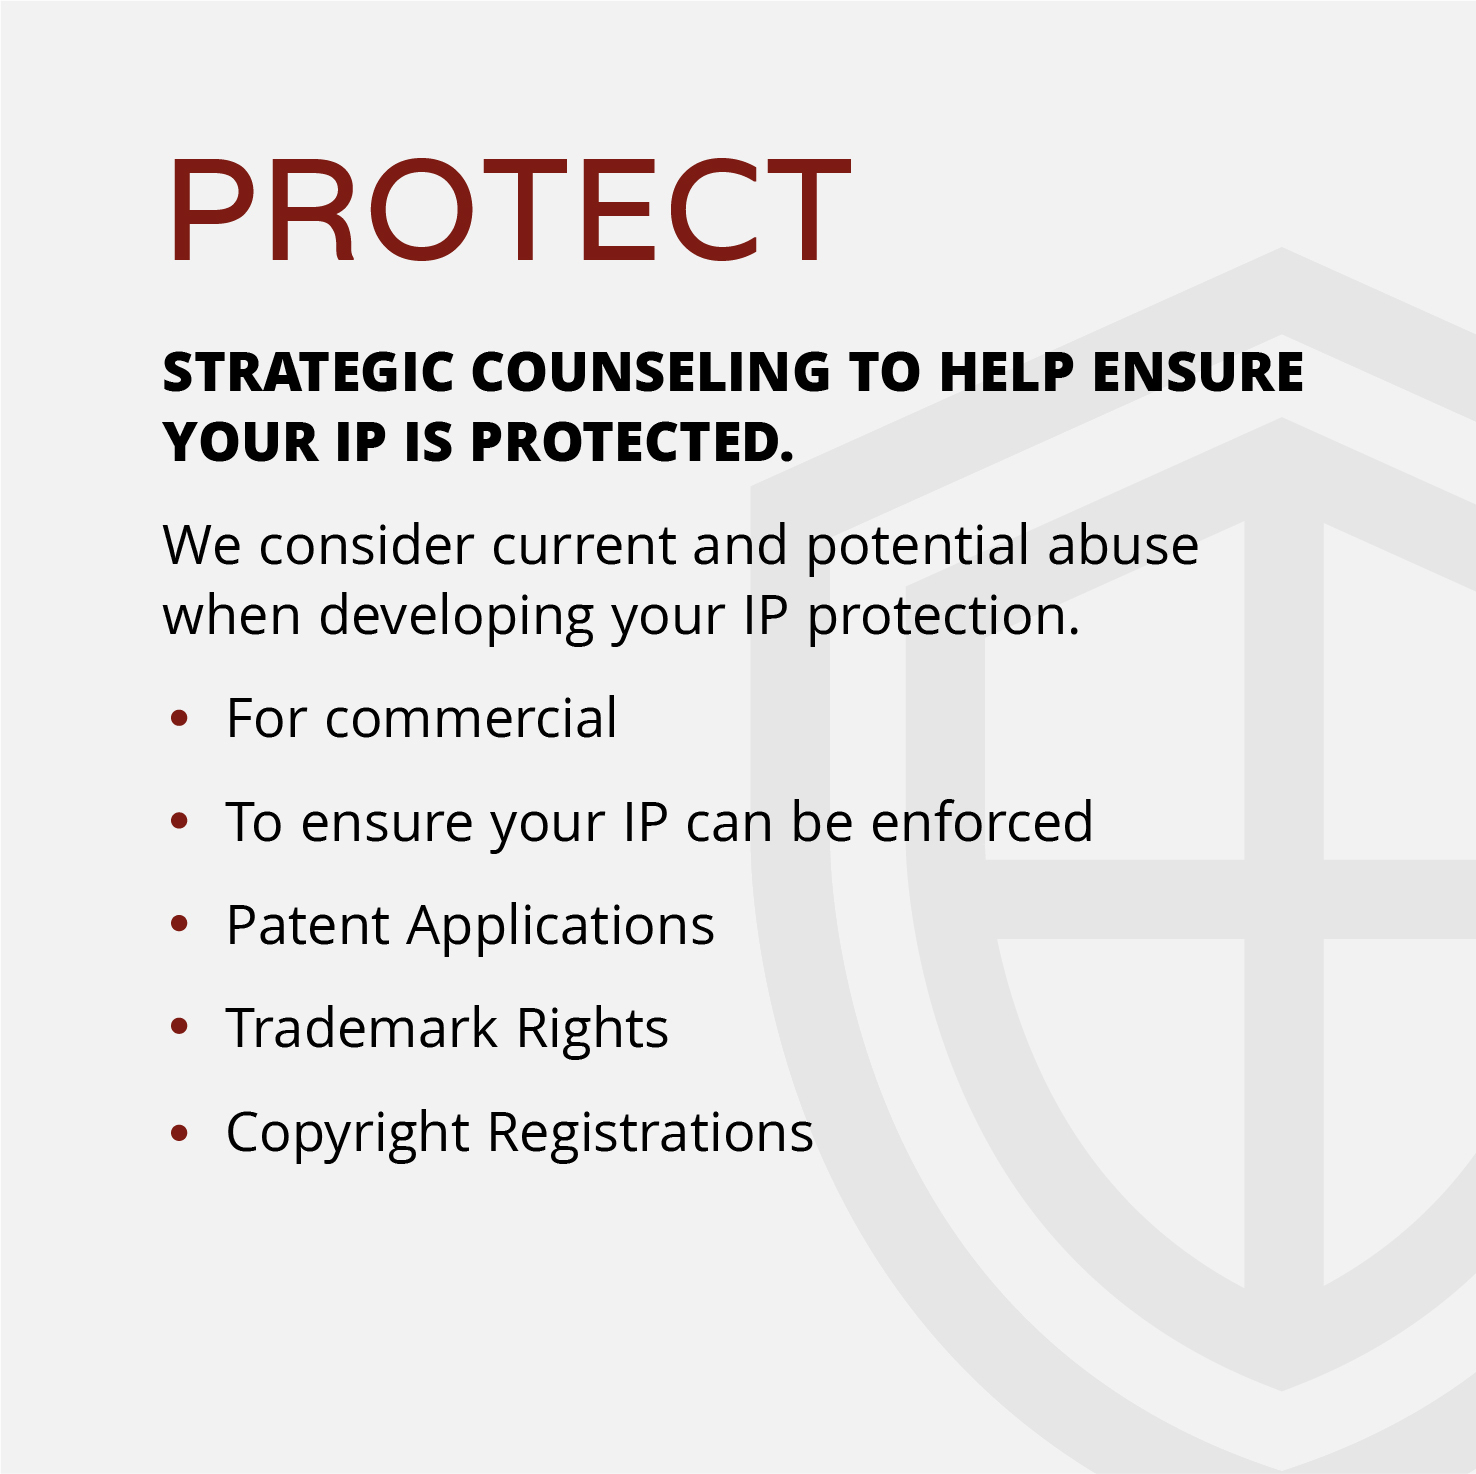 PROTECT STRATEGIC COUNSELING TO HELP ENSURE YOUR IP IS PROTECTED. We consider current and potential abuse when developing your IP protection.   ●For commercial  ●To ensure your IP can be enforced  ●Patent Applications ●Trademark Rights Copyright Registrations